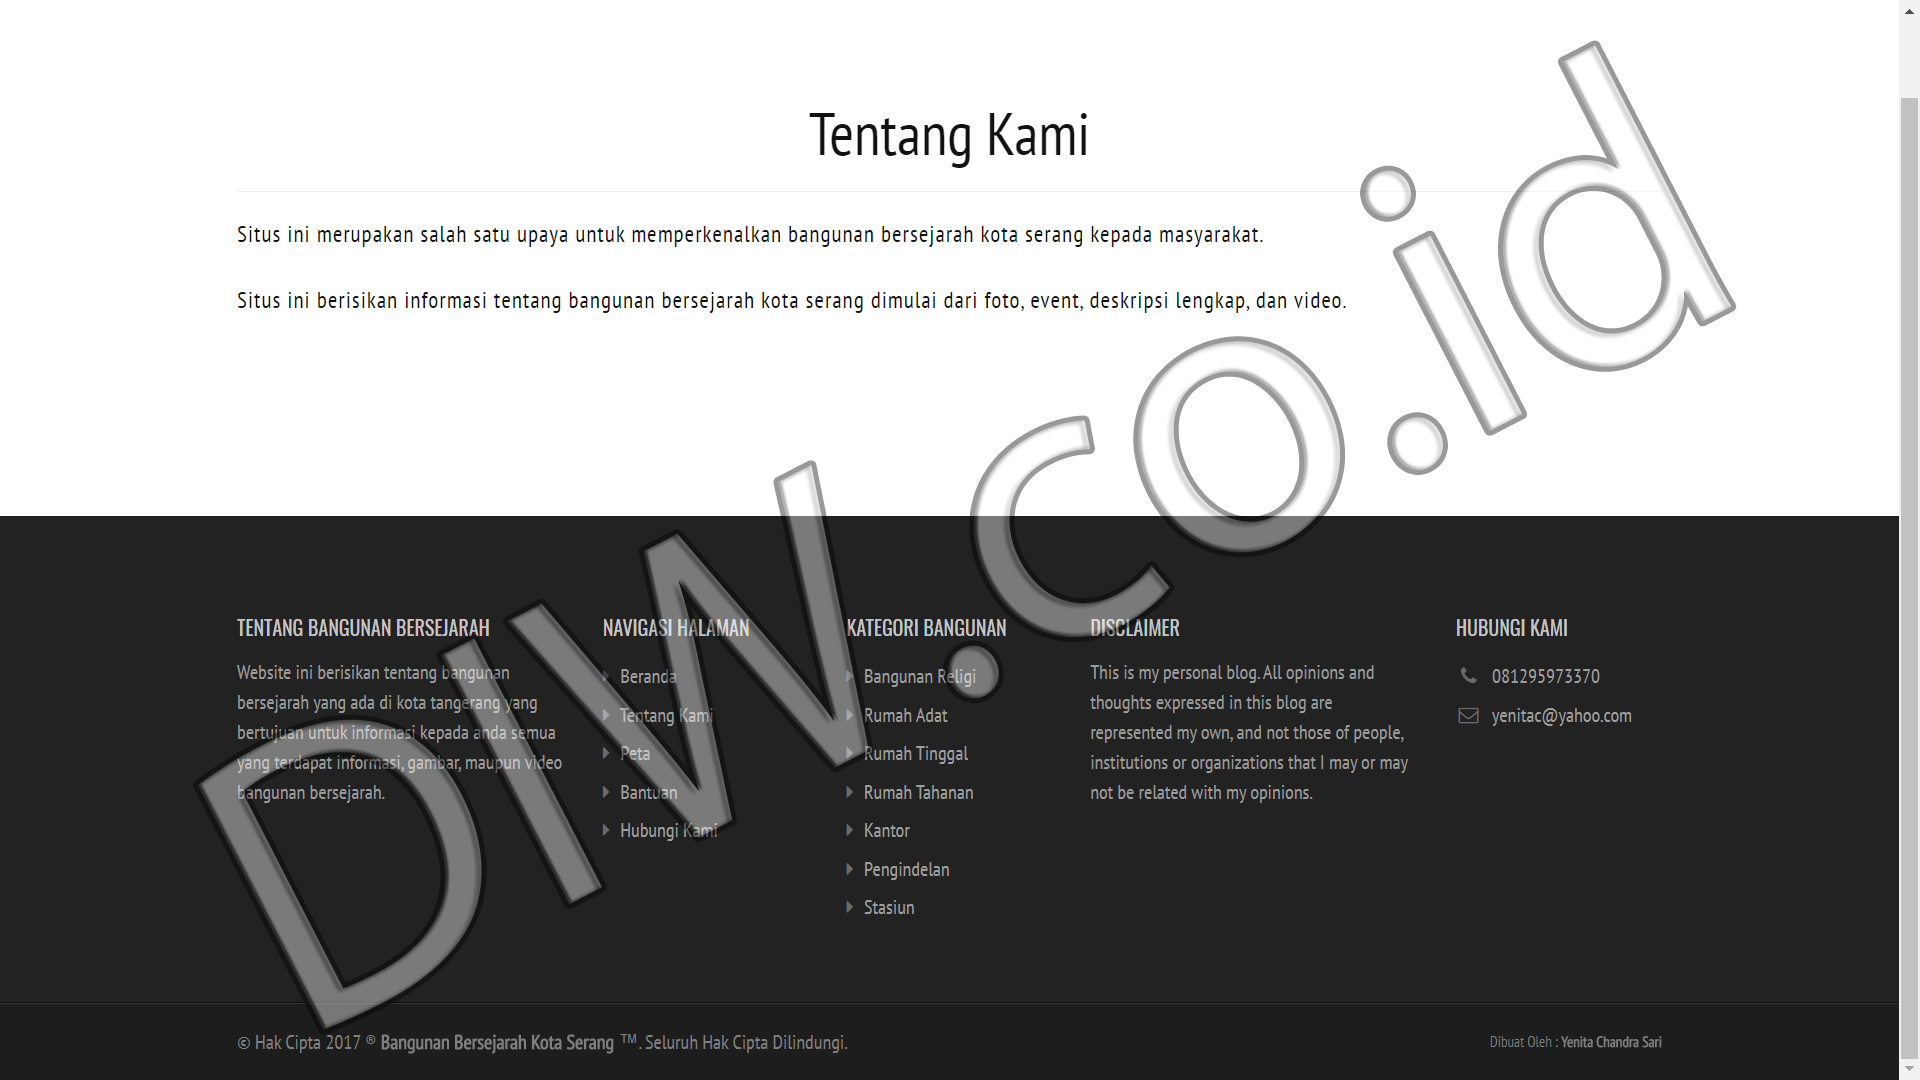 Portfolio 2 - Bangunan Bersejarah - Andri Sunardi - Freelancer - Web Developer - CEO DIW.co.id